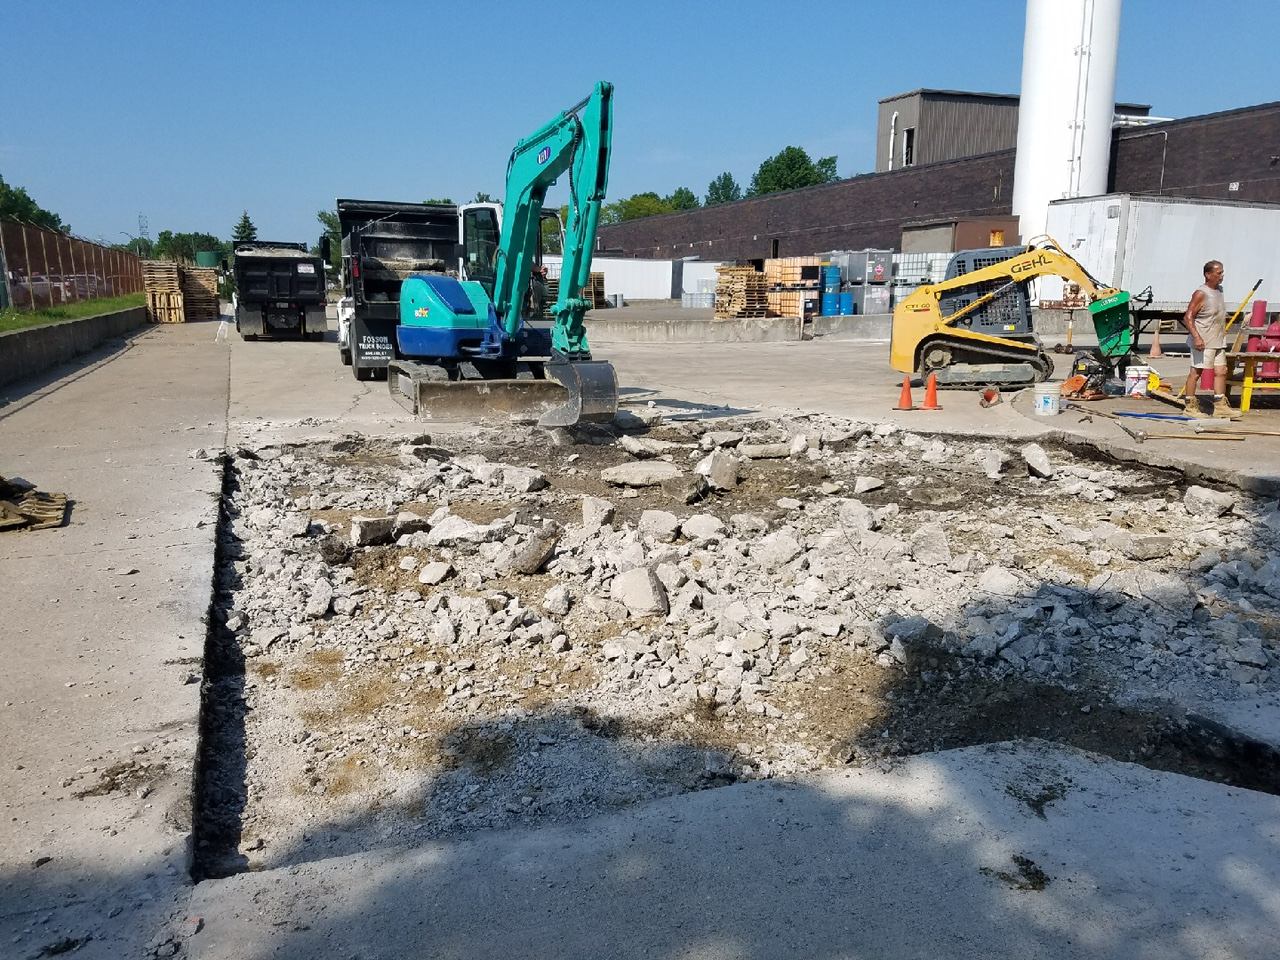 Concrete demolition for a commercial concrete repair project